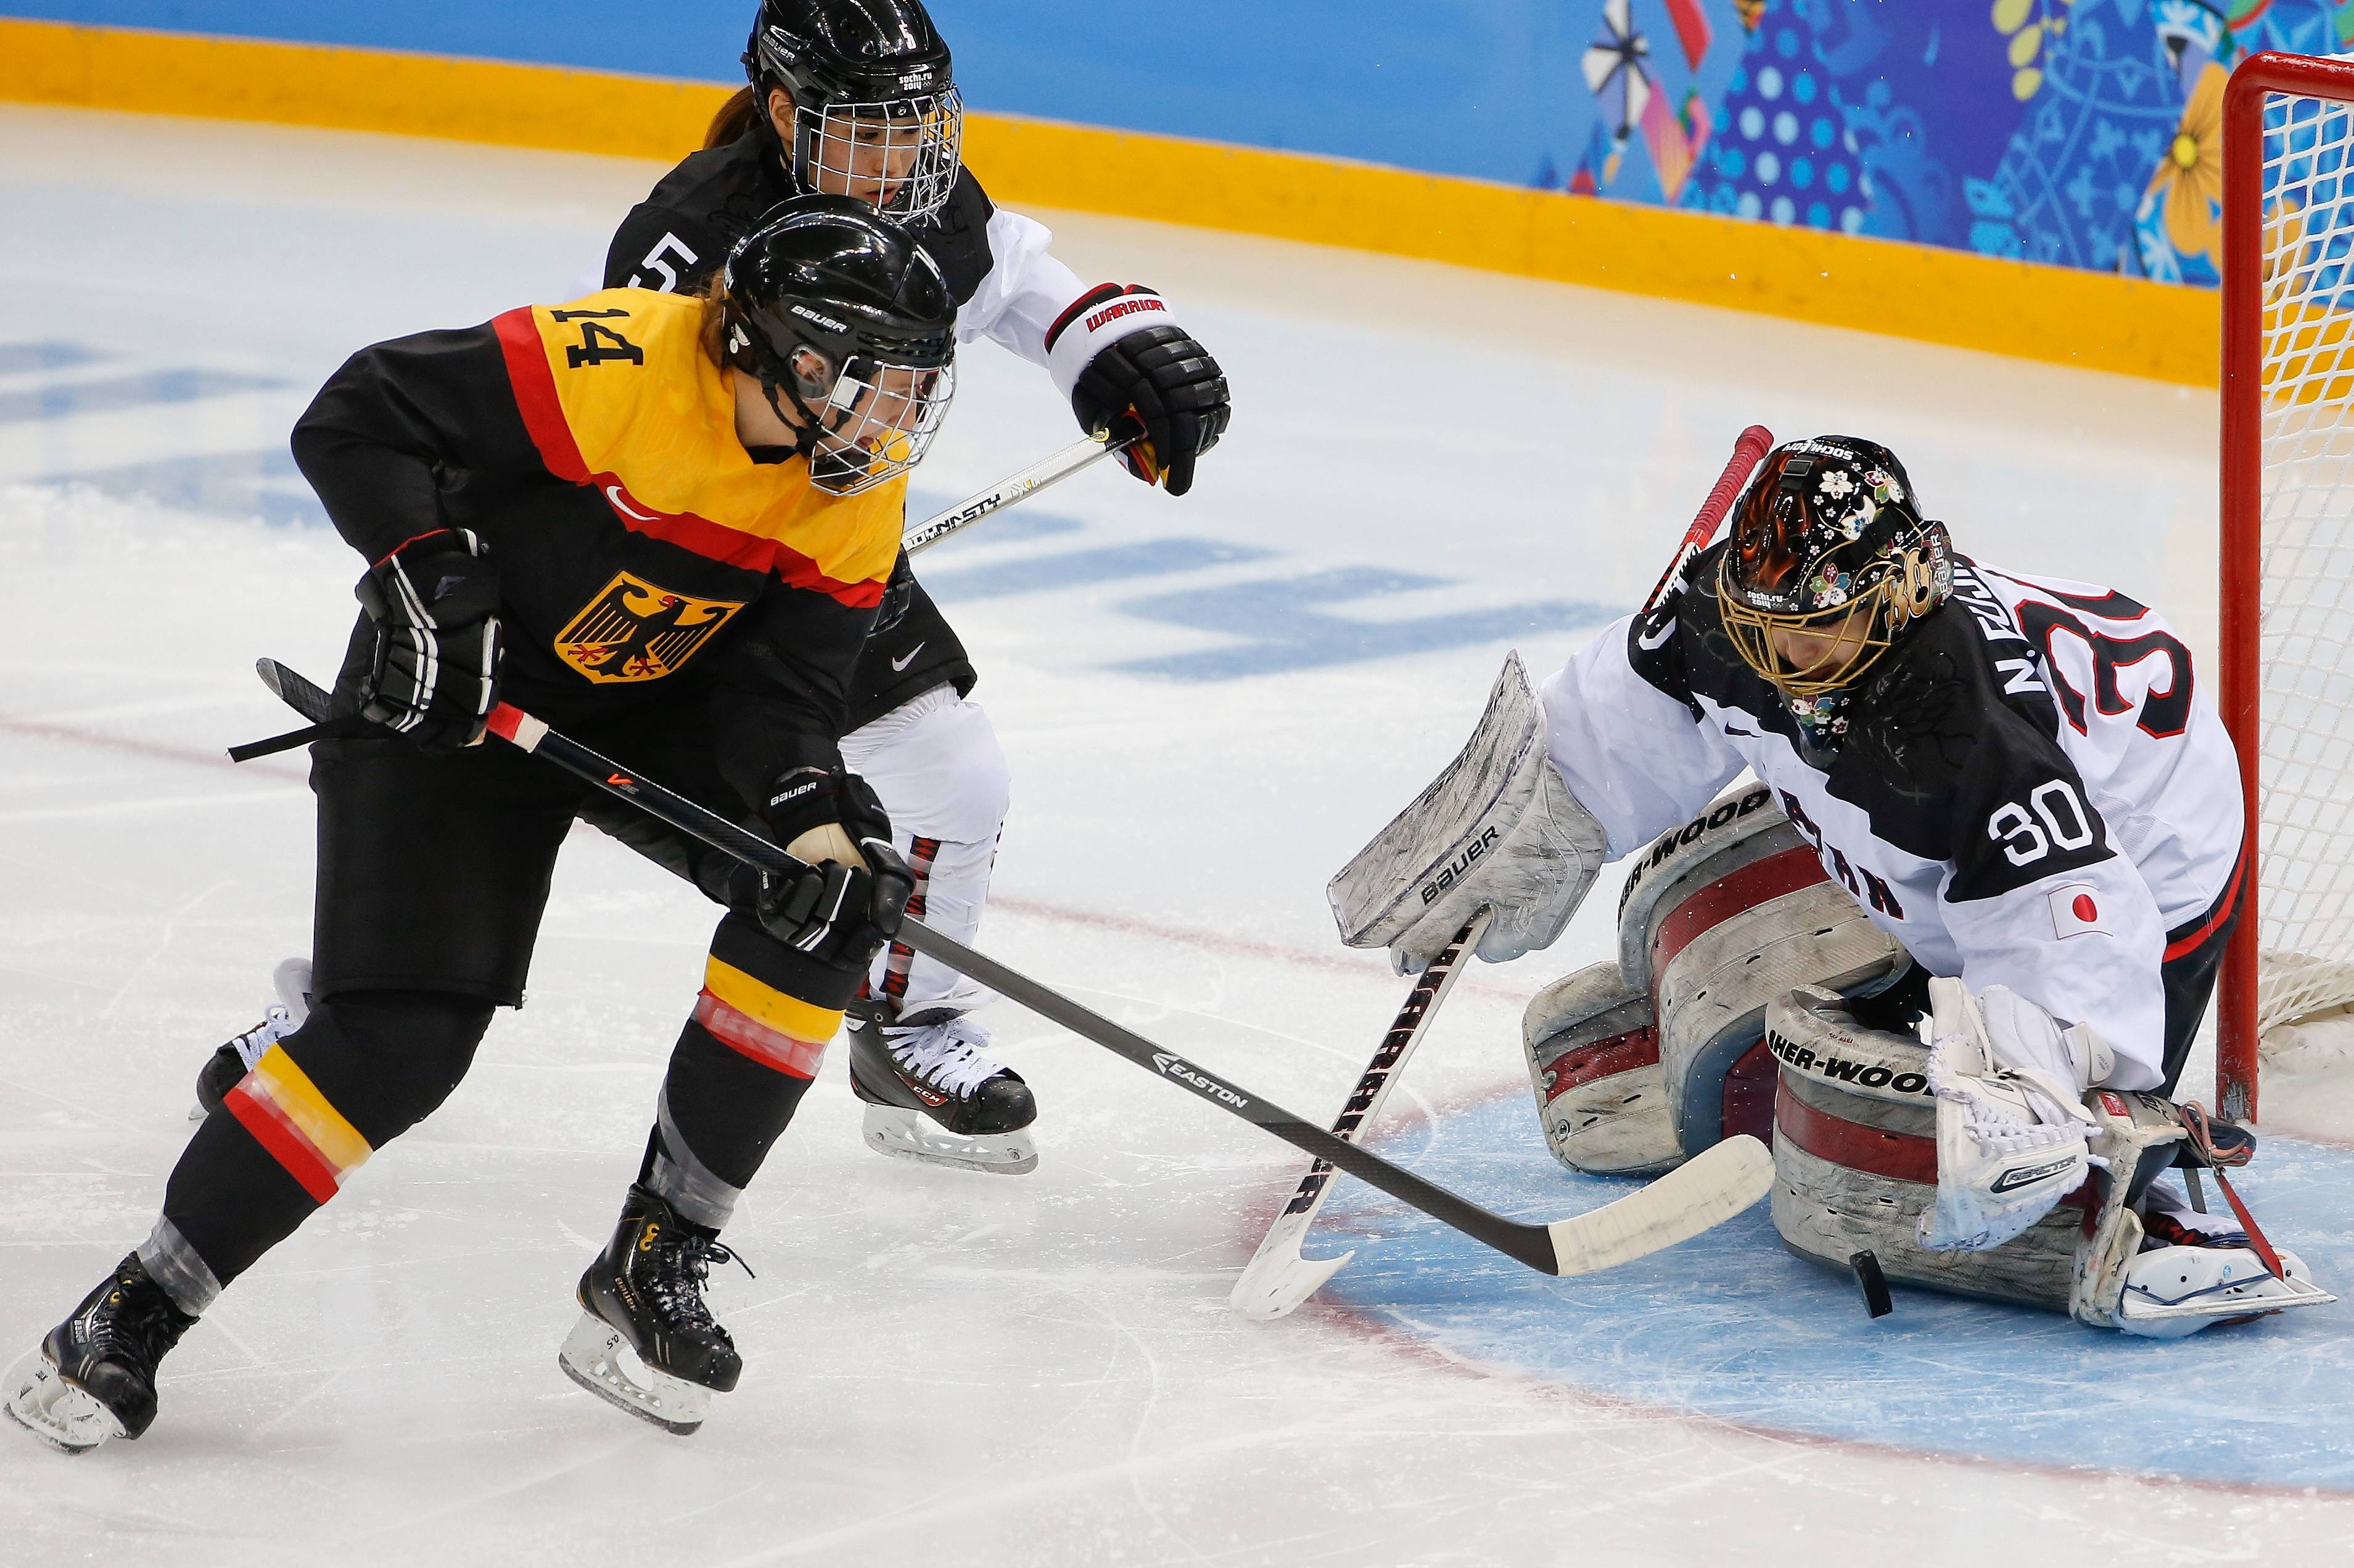 Goalkeeper Nana Fujimoto of Japan blocks Germany's Jacqueline Janzen shot Tuesday during the second period of the 2014 Winter Olympics women's ice hockey game at Shayba Arena in Sochi, Russia.